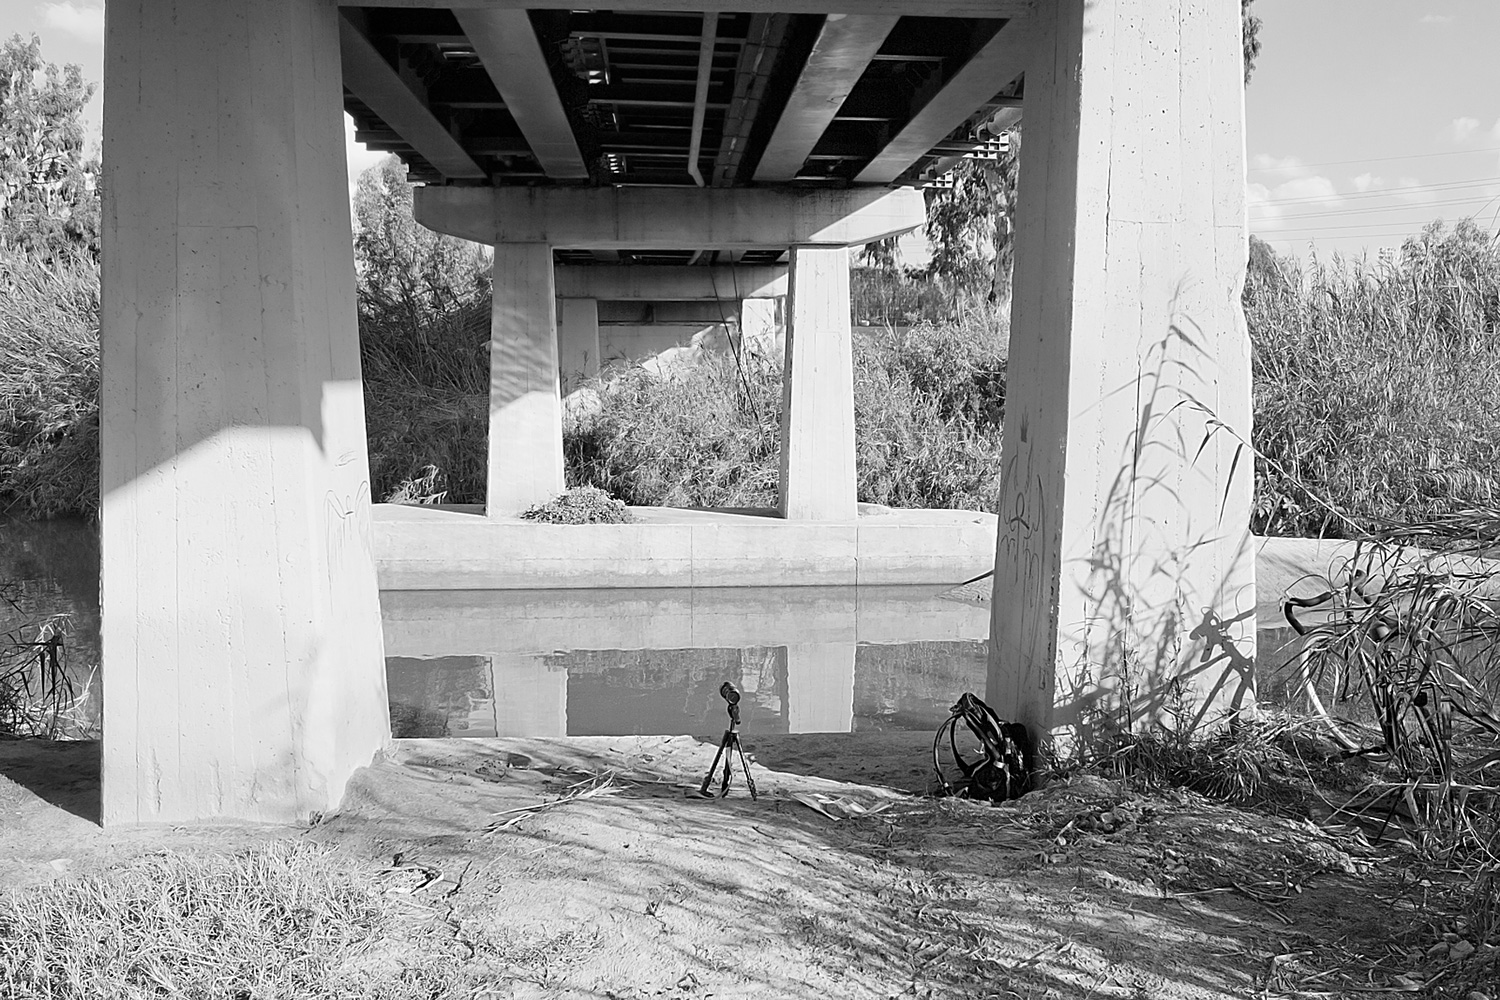 Under the bridge, where it all happened, with the grounsel mound on the other side